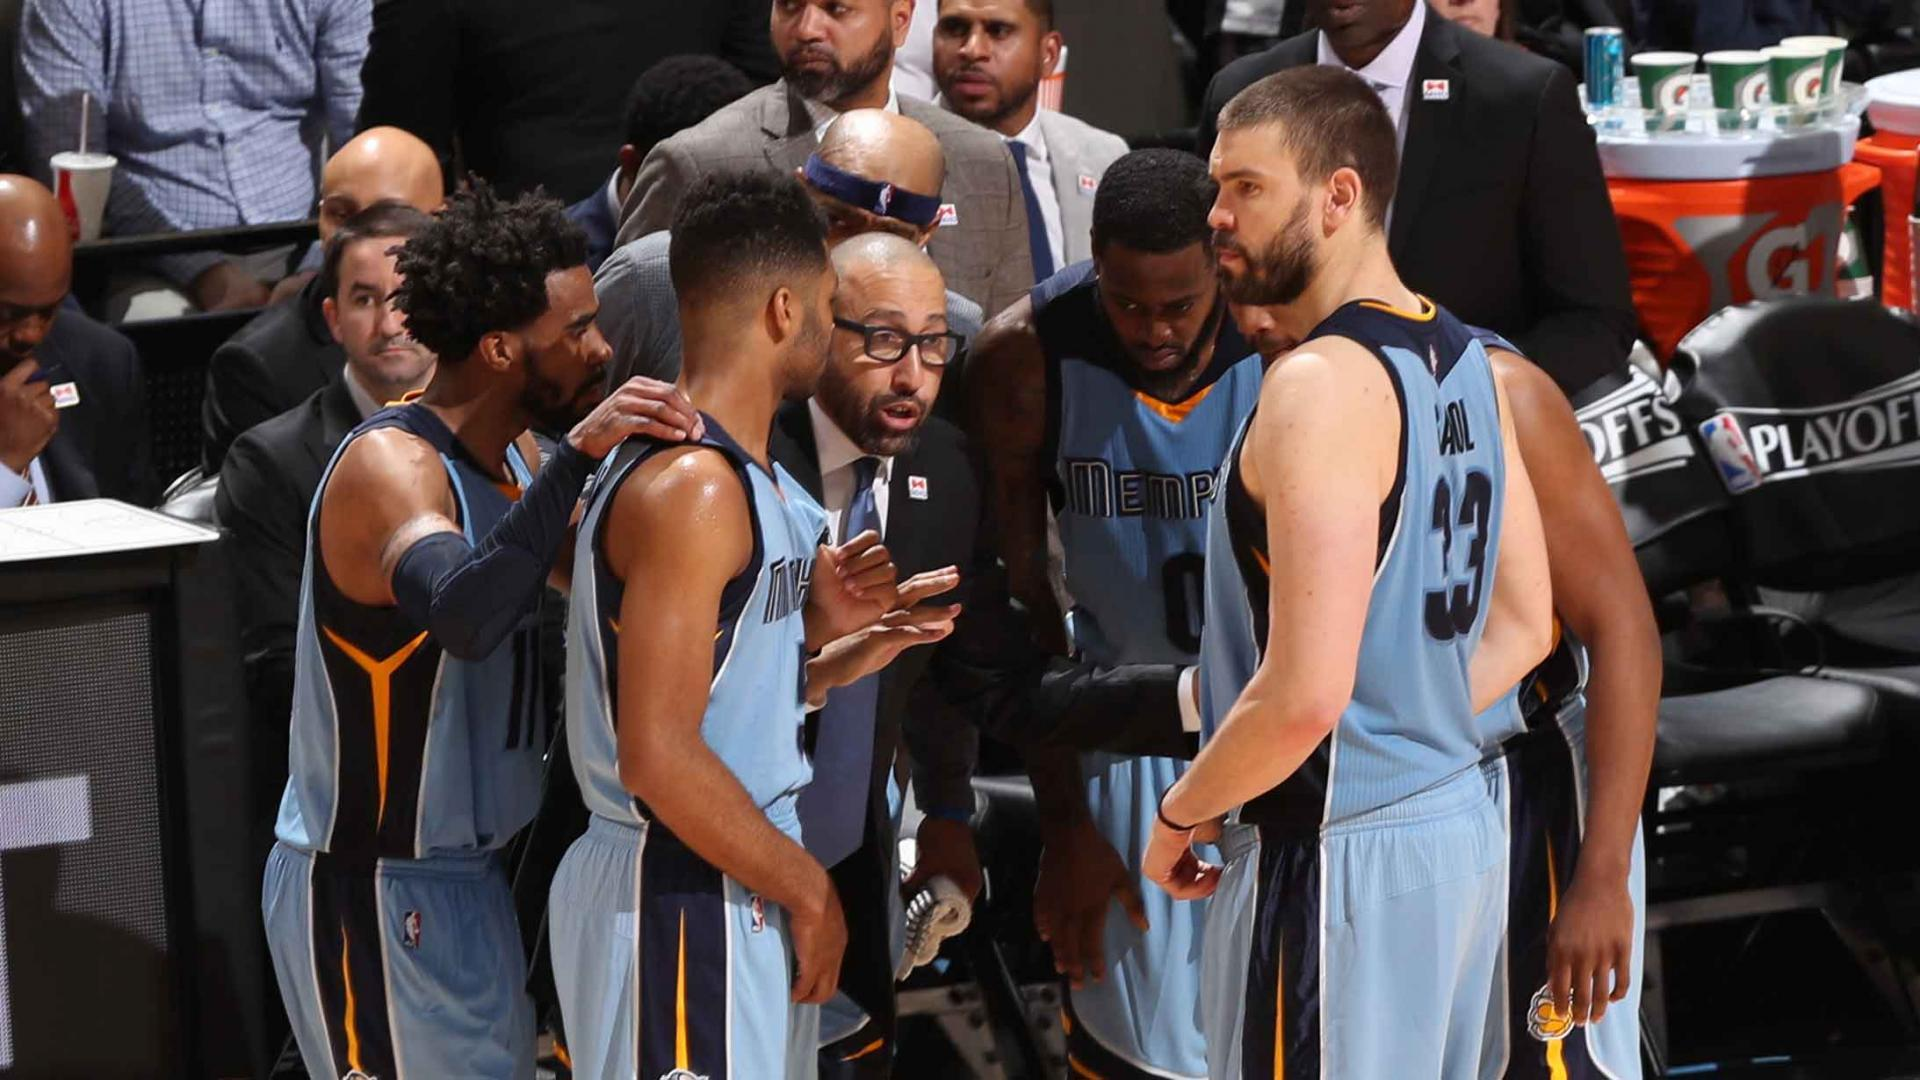 a69ffb63cb31 Details about the Marc Gasol-David Fizdale relationship that wasn t  continue to trickle out. The latest comes from USA Today s Sam Amick and  Jeff Zillgitt